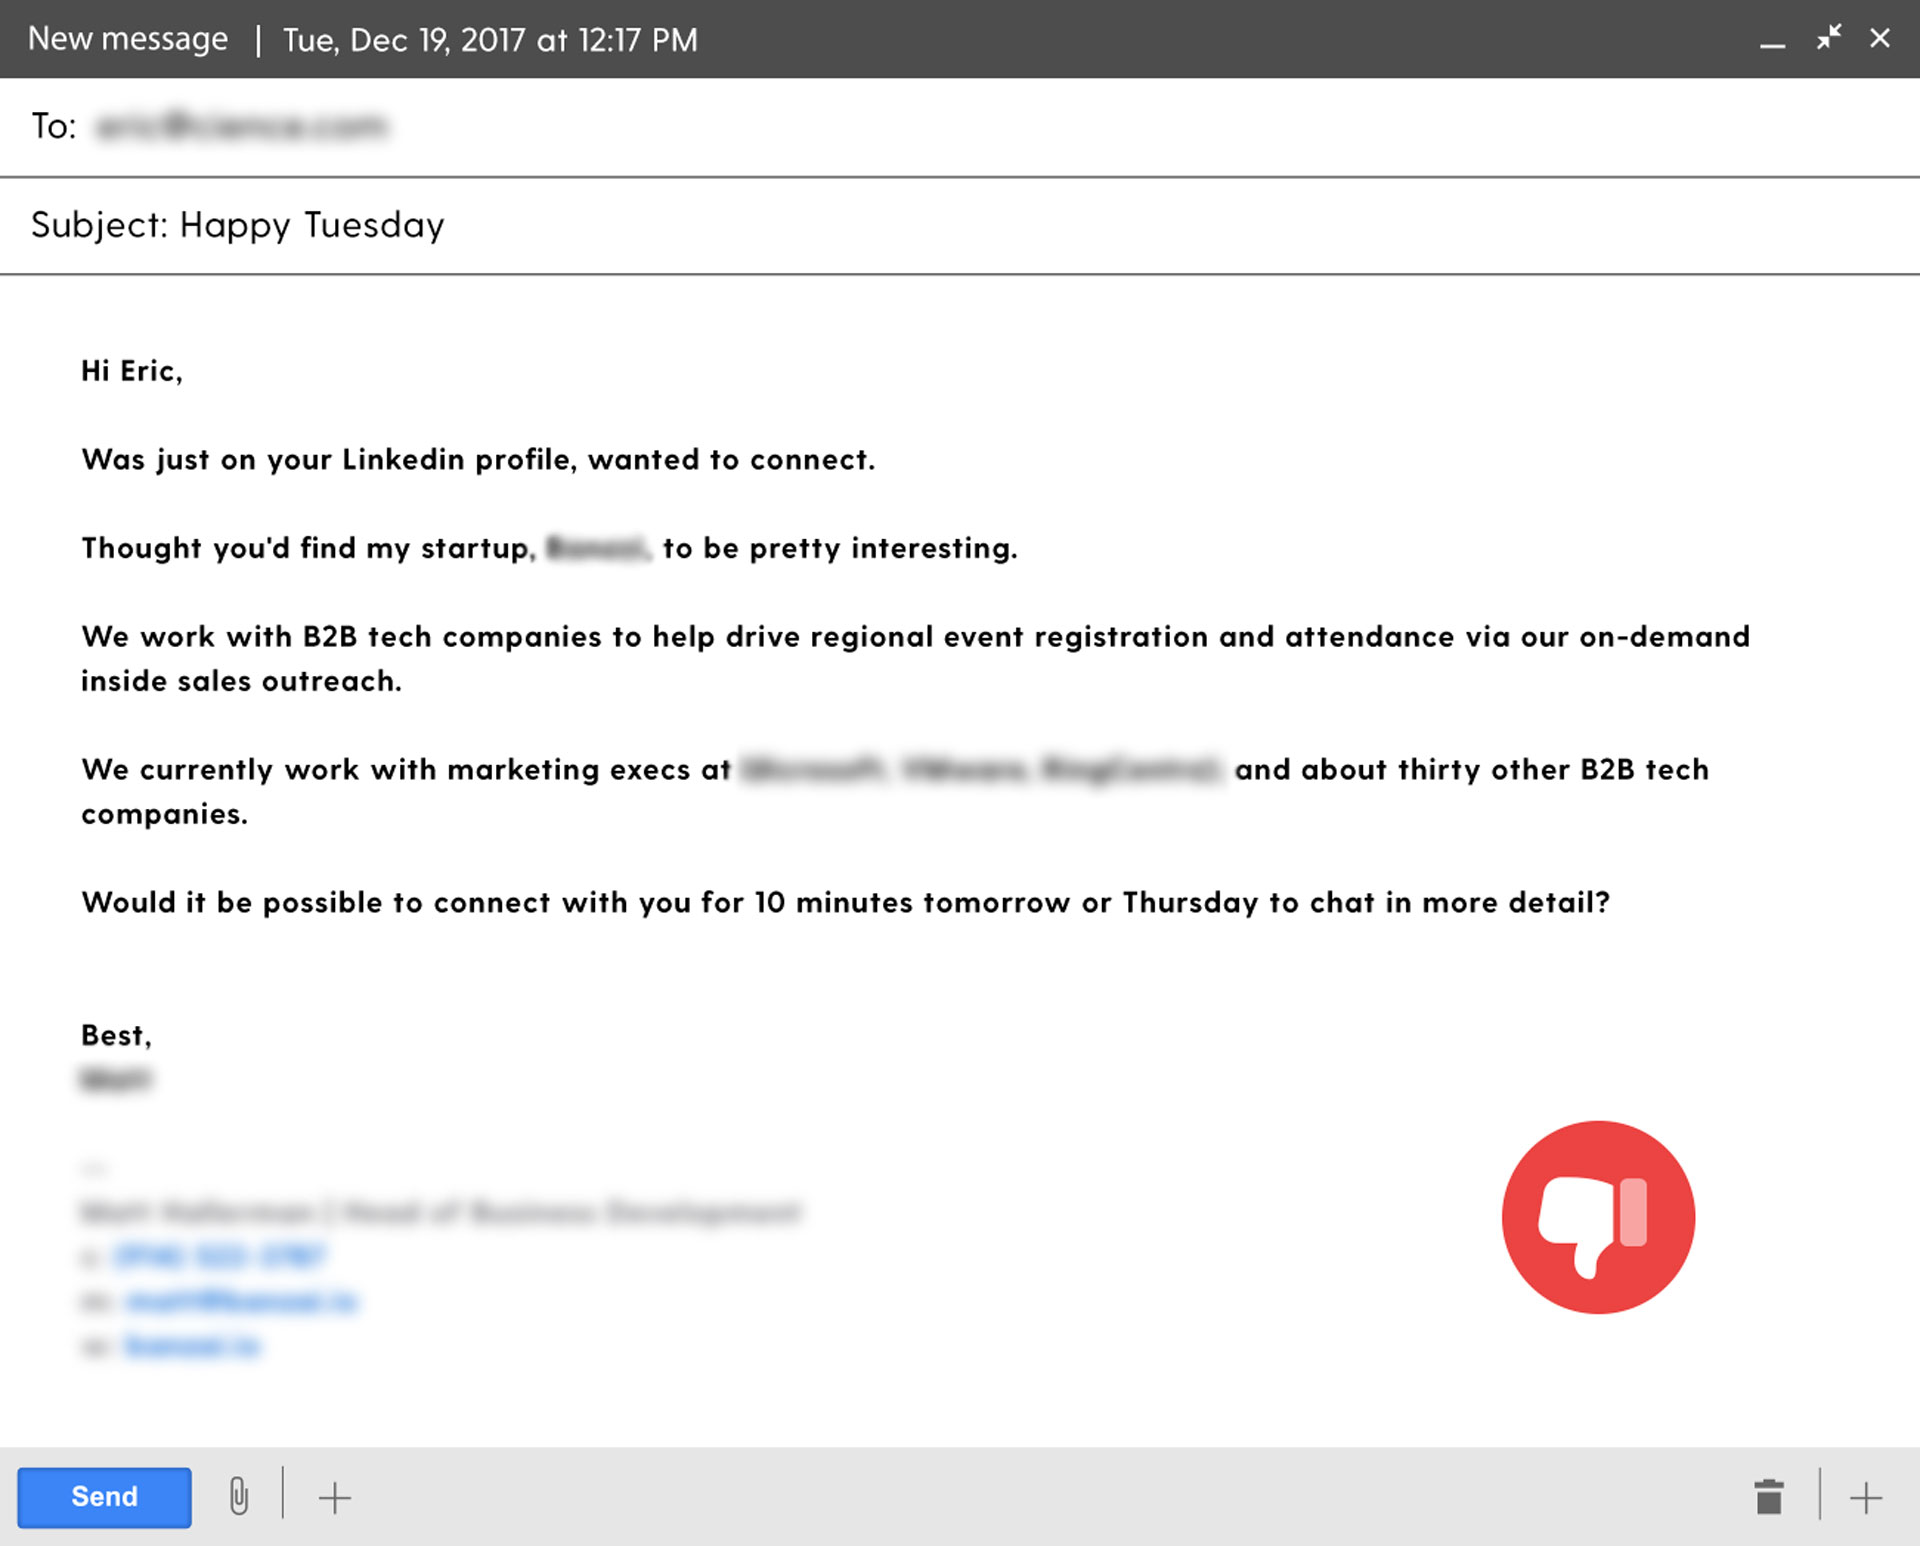 example of a self-centric sales email